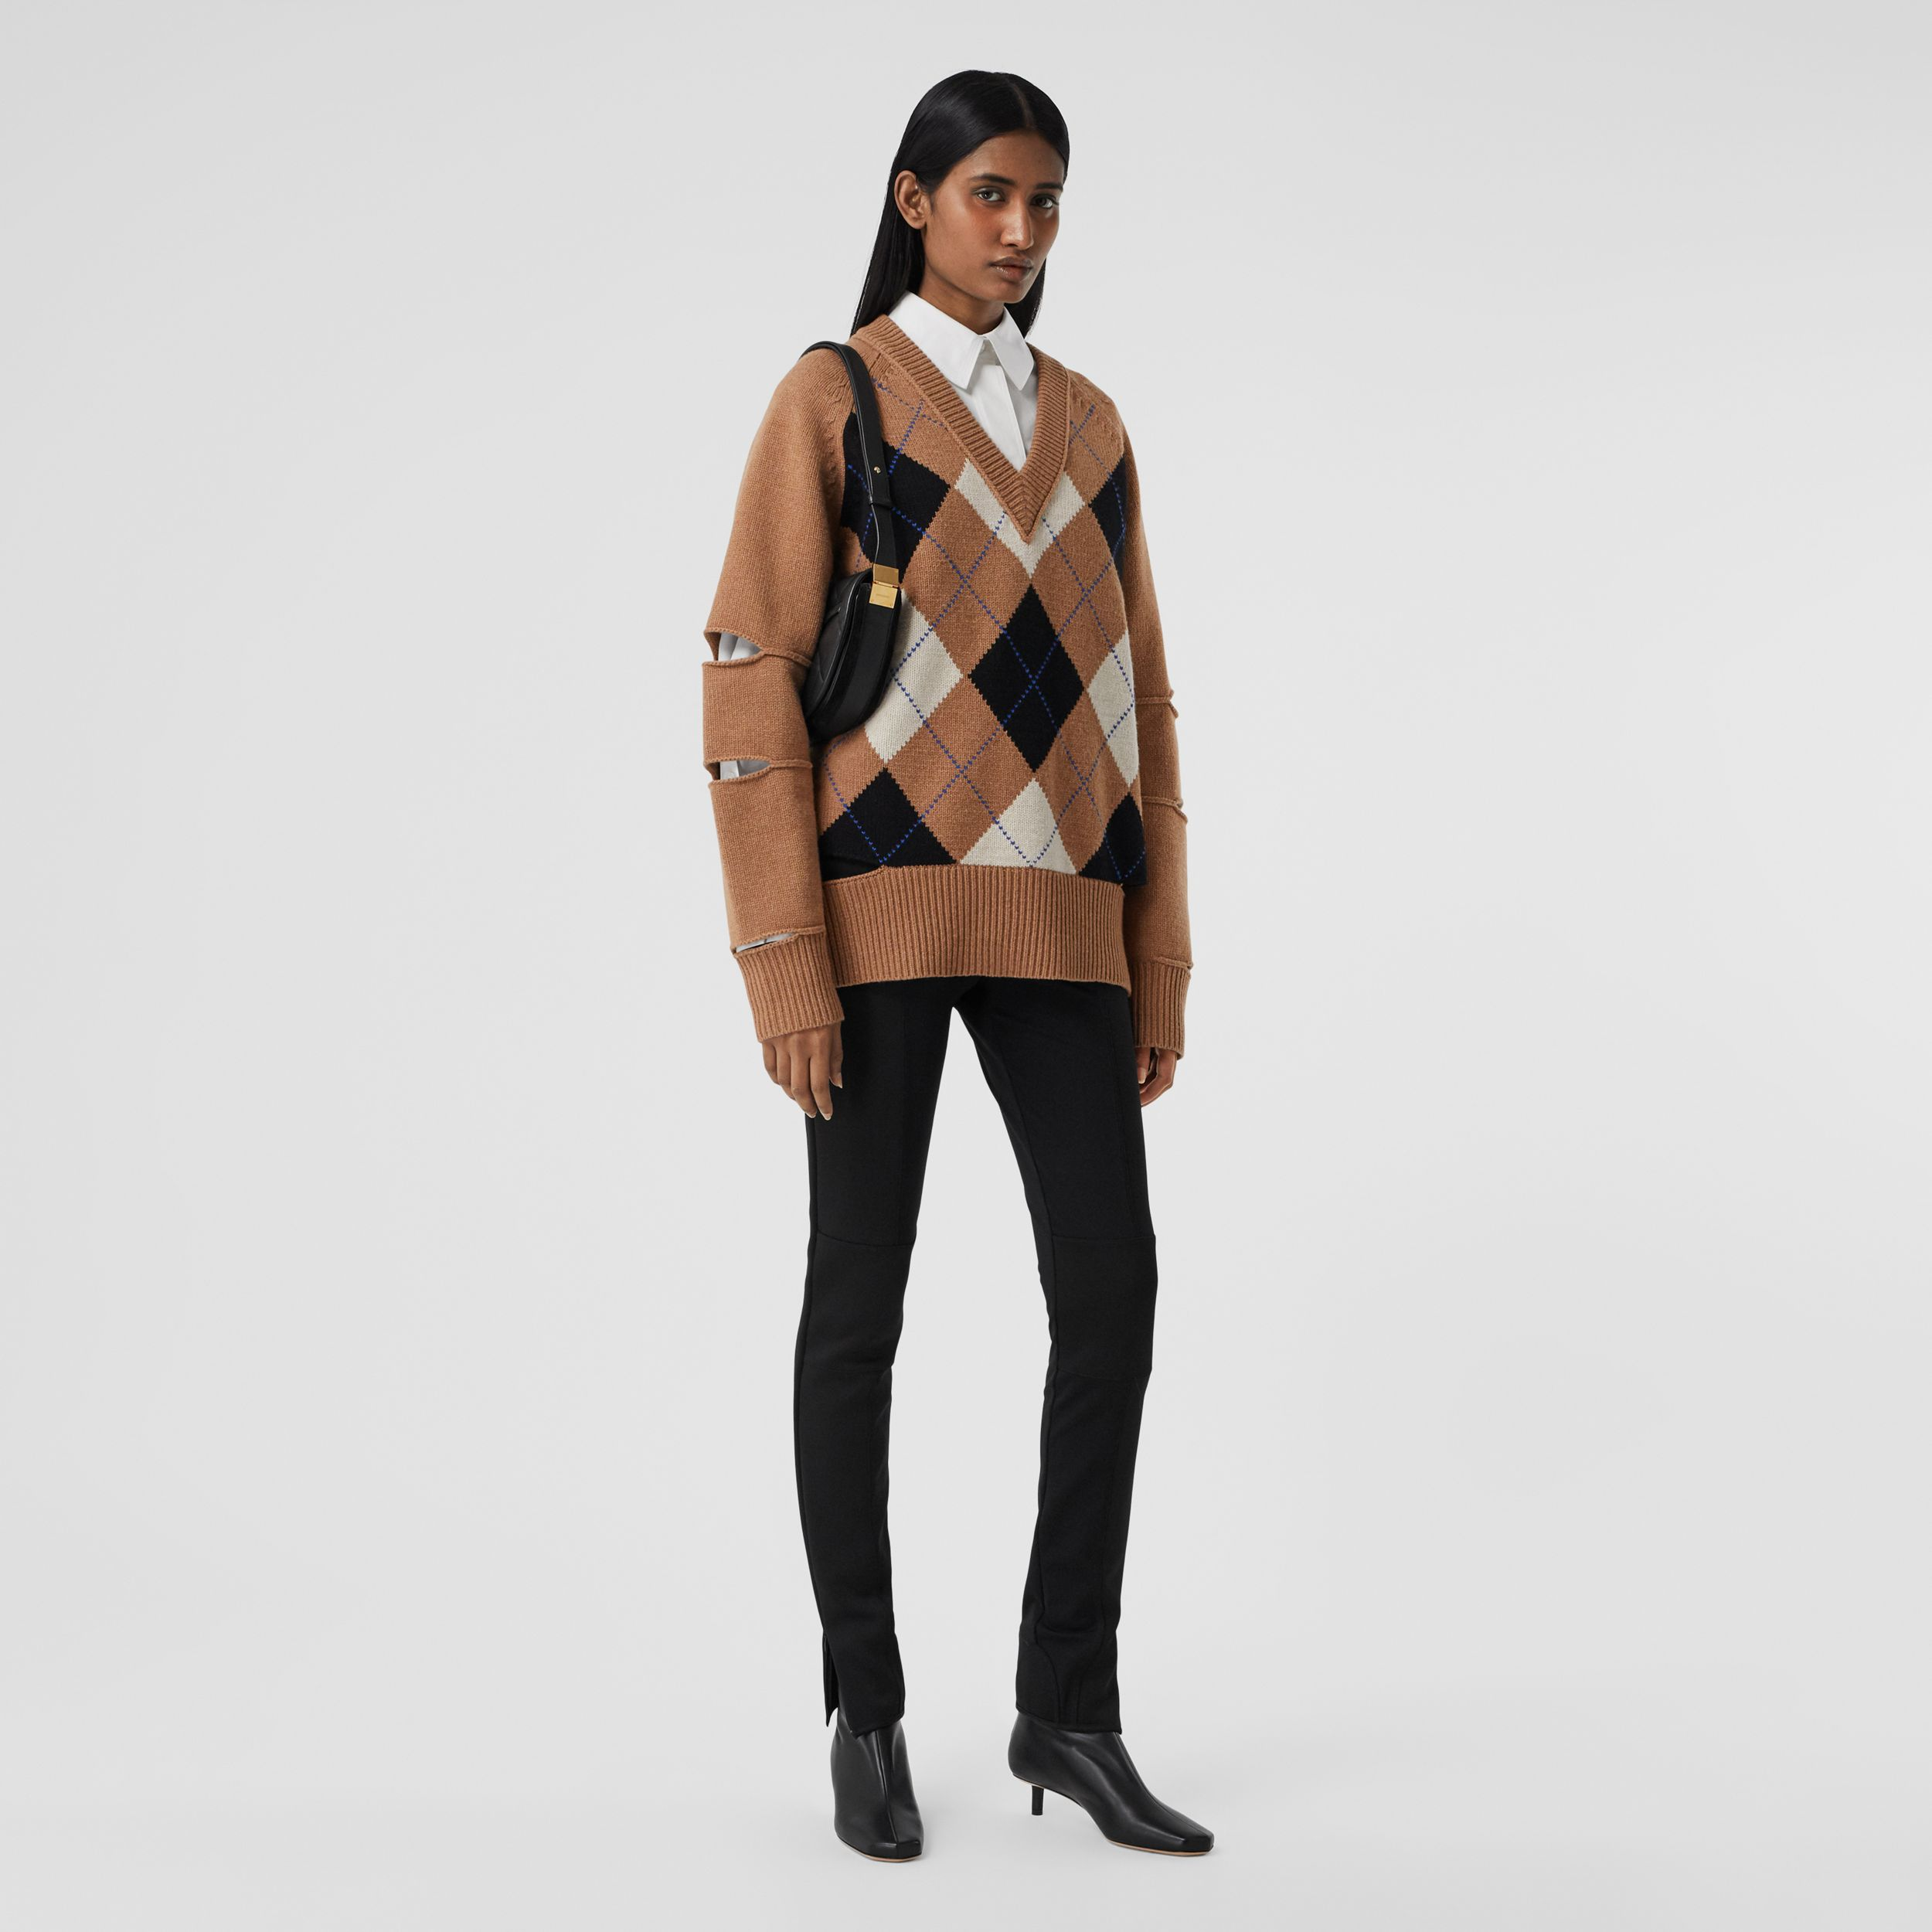 Cut-out Detail Argyle Intarsia Wool Cashmere Sweater in Camel - Women | Burberry Australia - 1